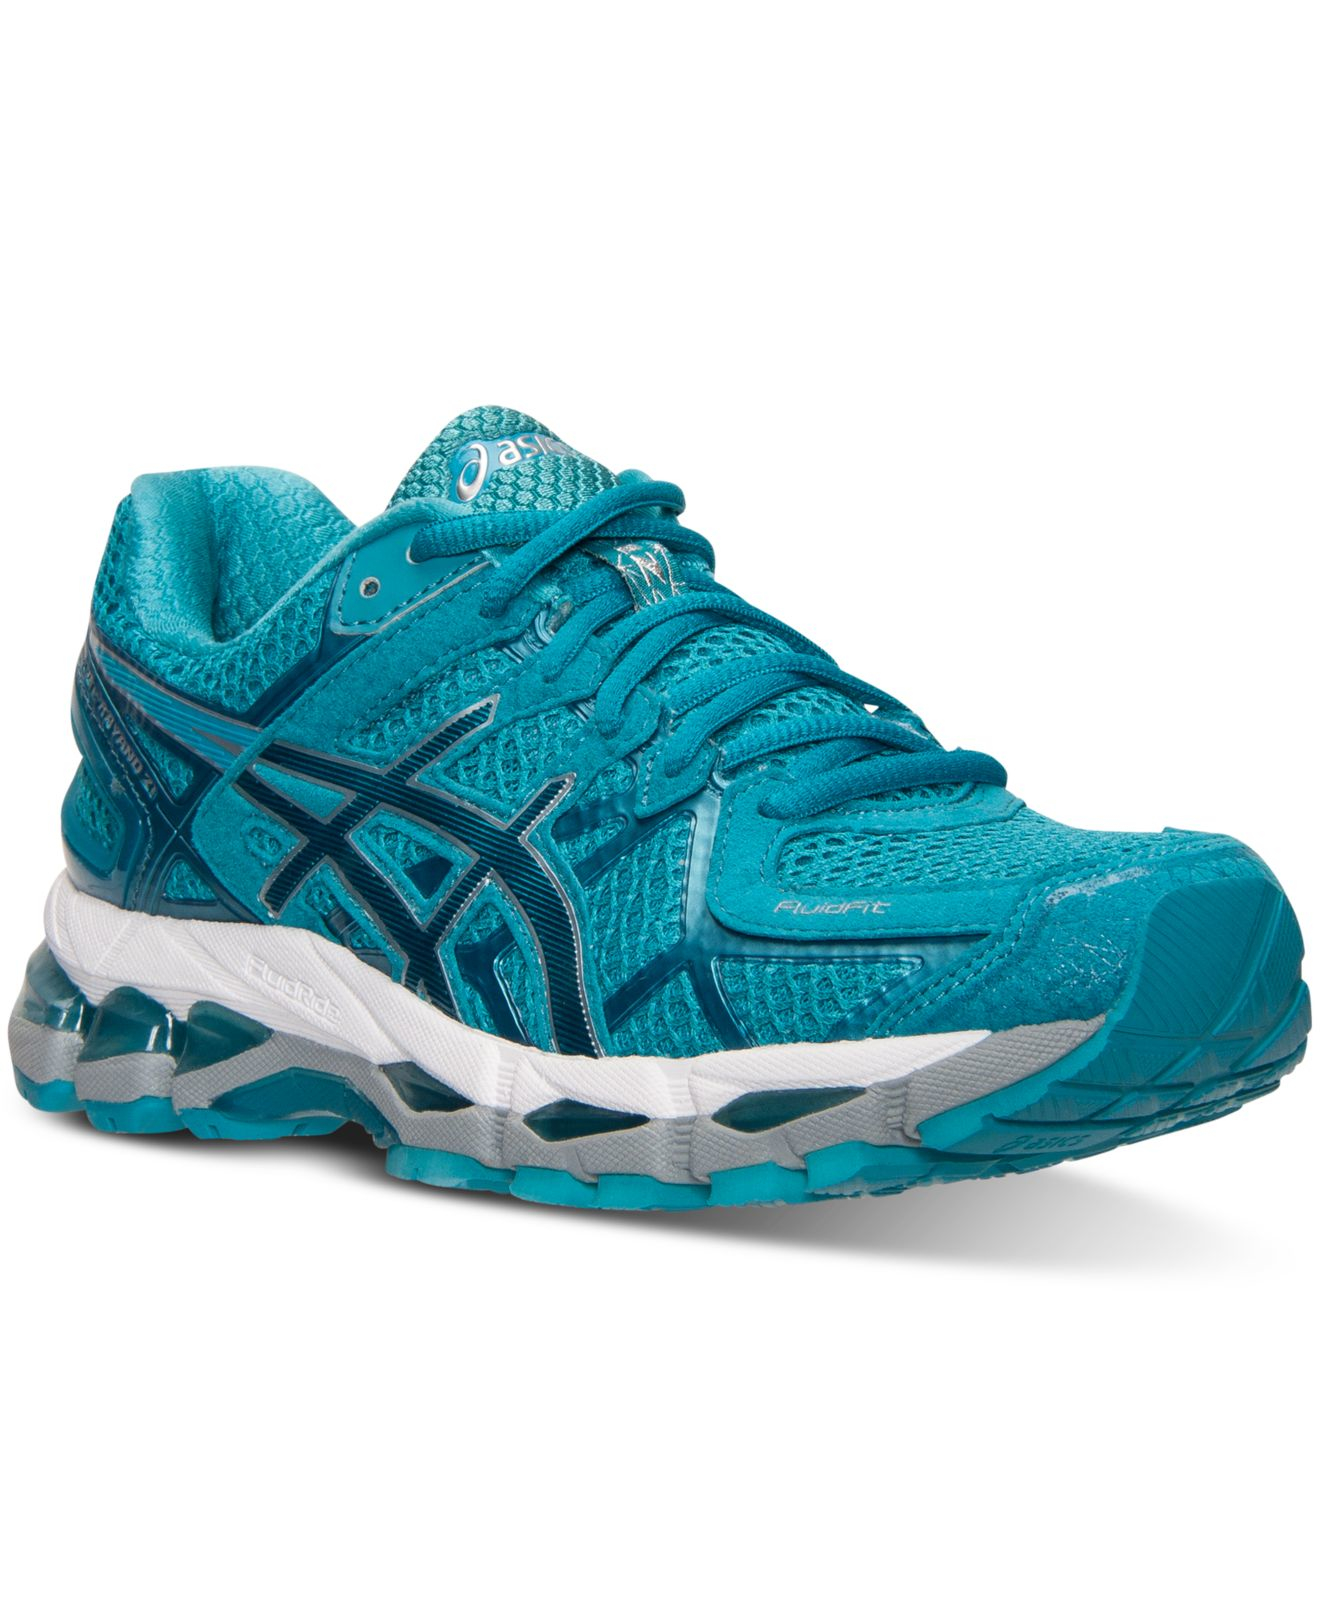 Asics Gel Kayano 21 high España